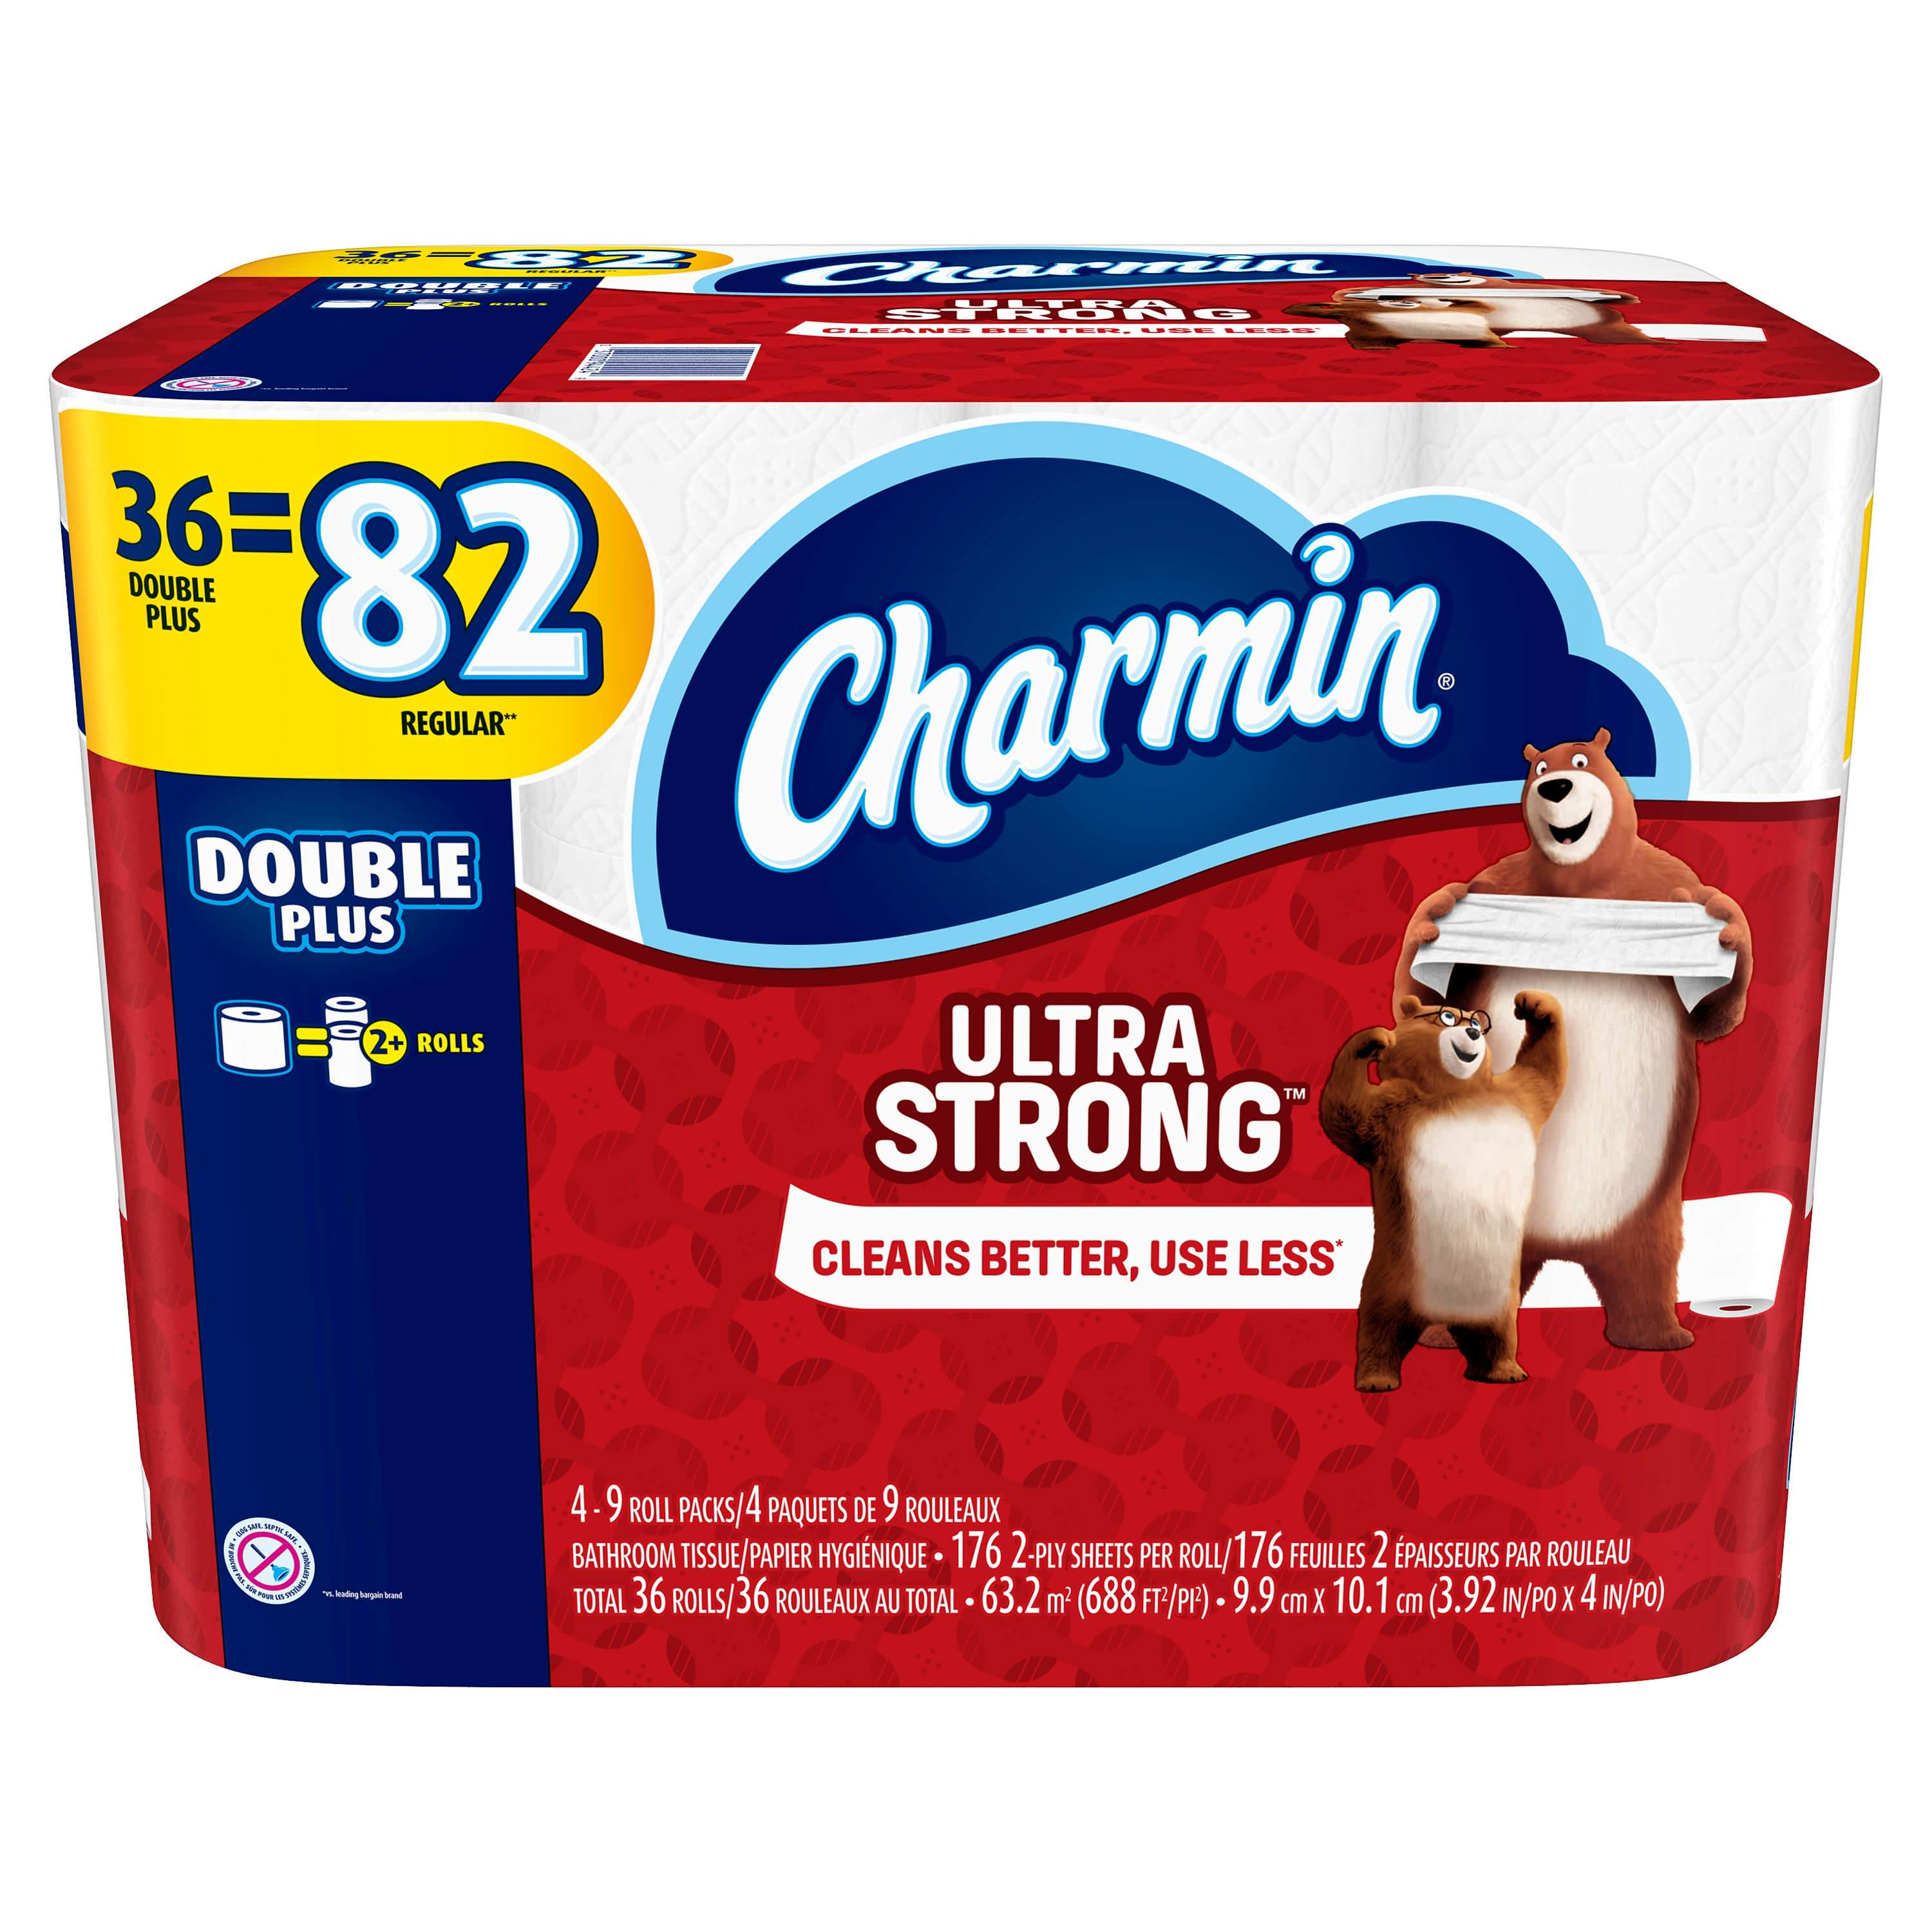 108 Ct Charmin Double Plus Roll Toilet Paper Ultra Strong